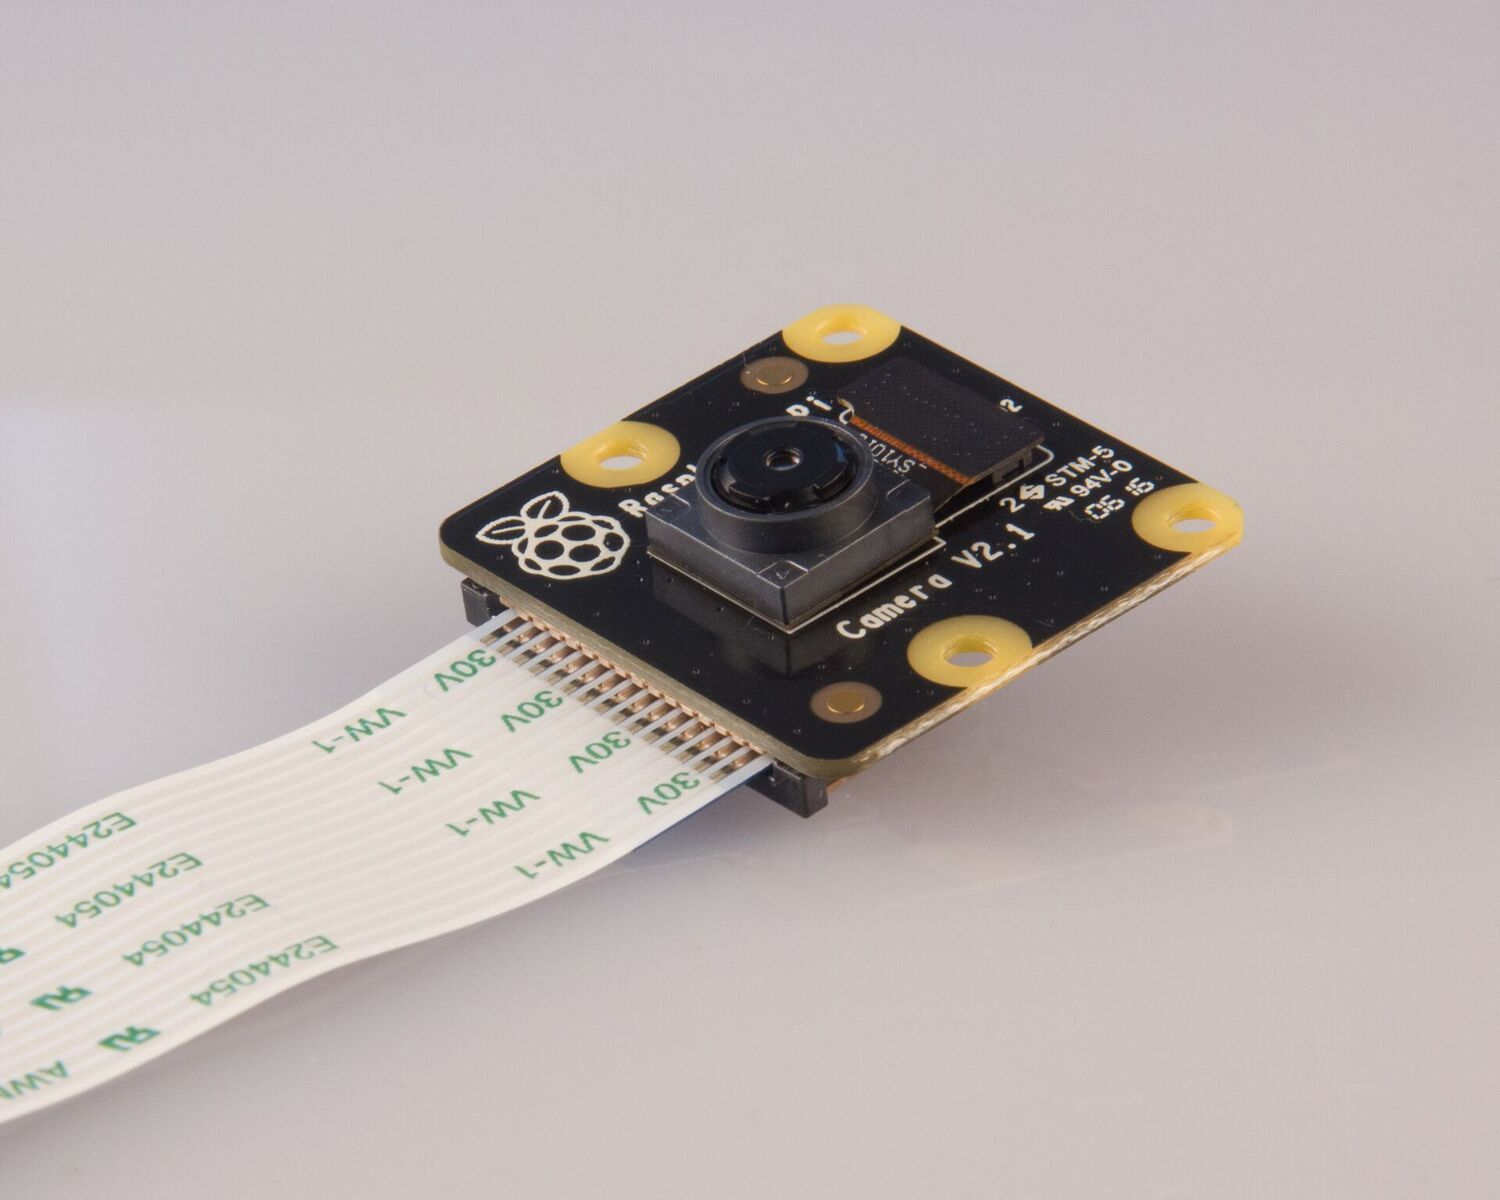 New 8-megapixel camera board on sale at $25 | Computers